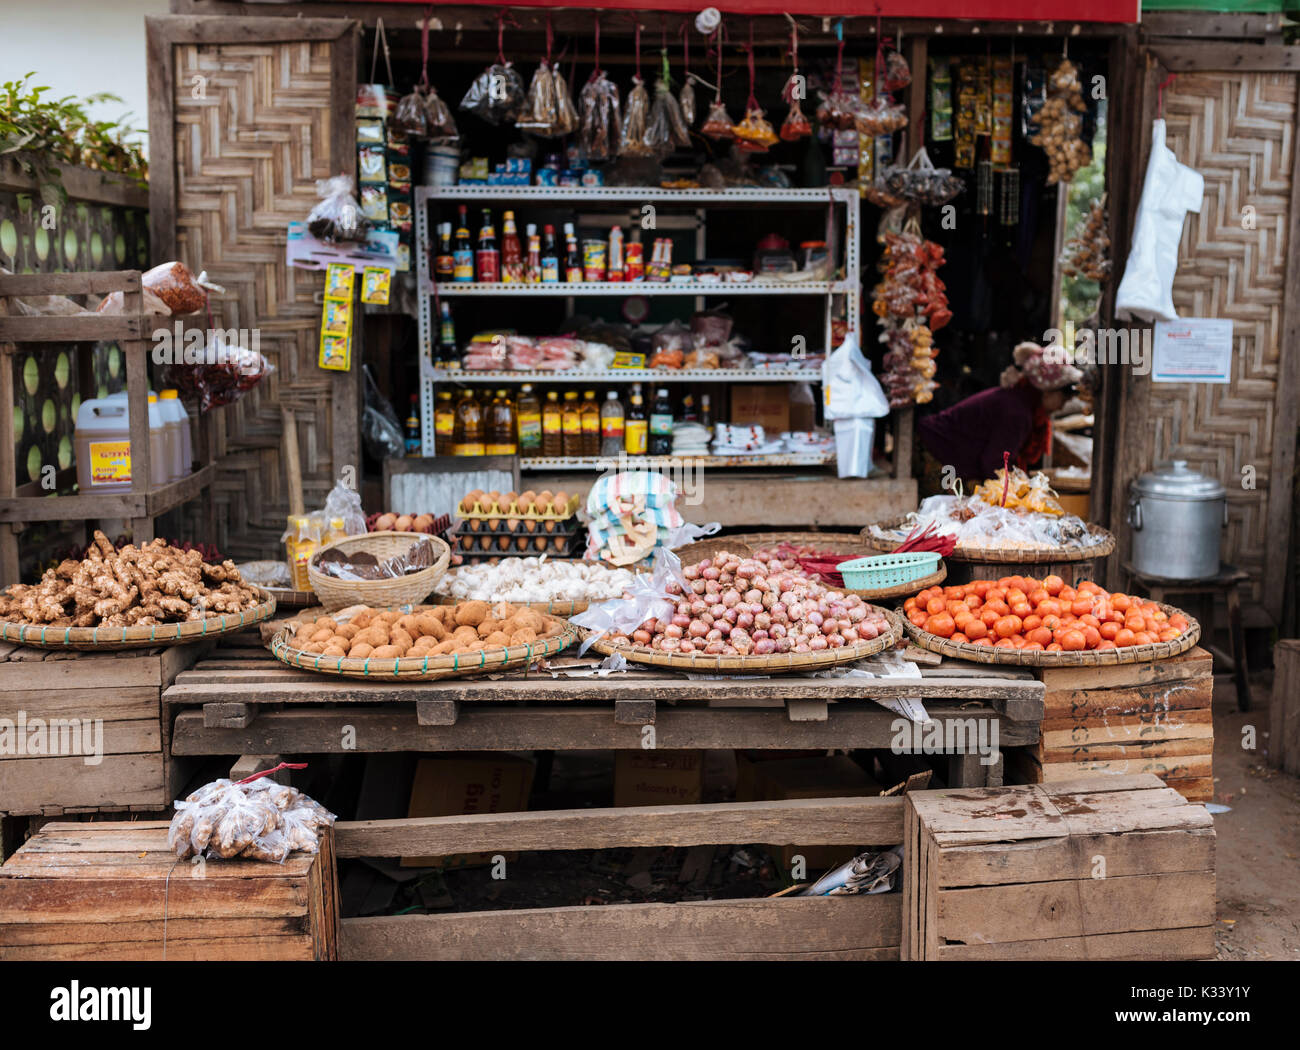 Hsipaw Morning Market, Hsipaw, Shan State, Myanmar, Asia - Stock Image